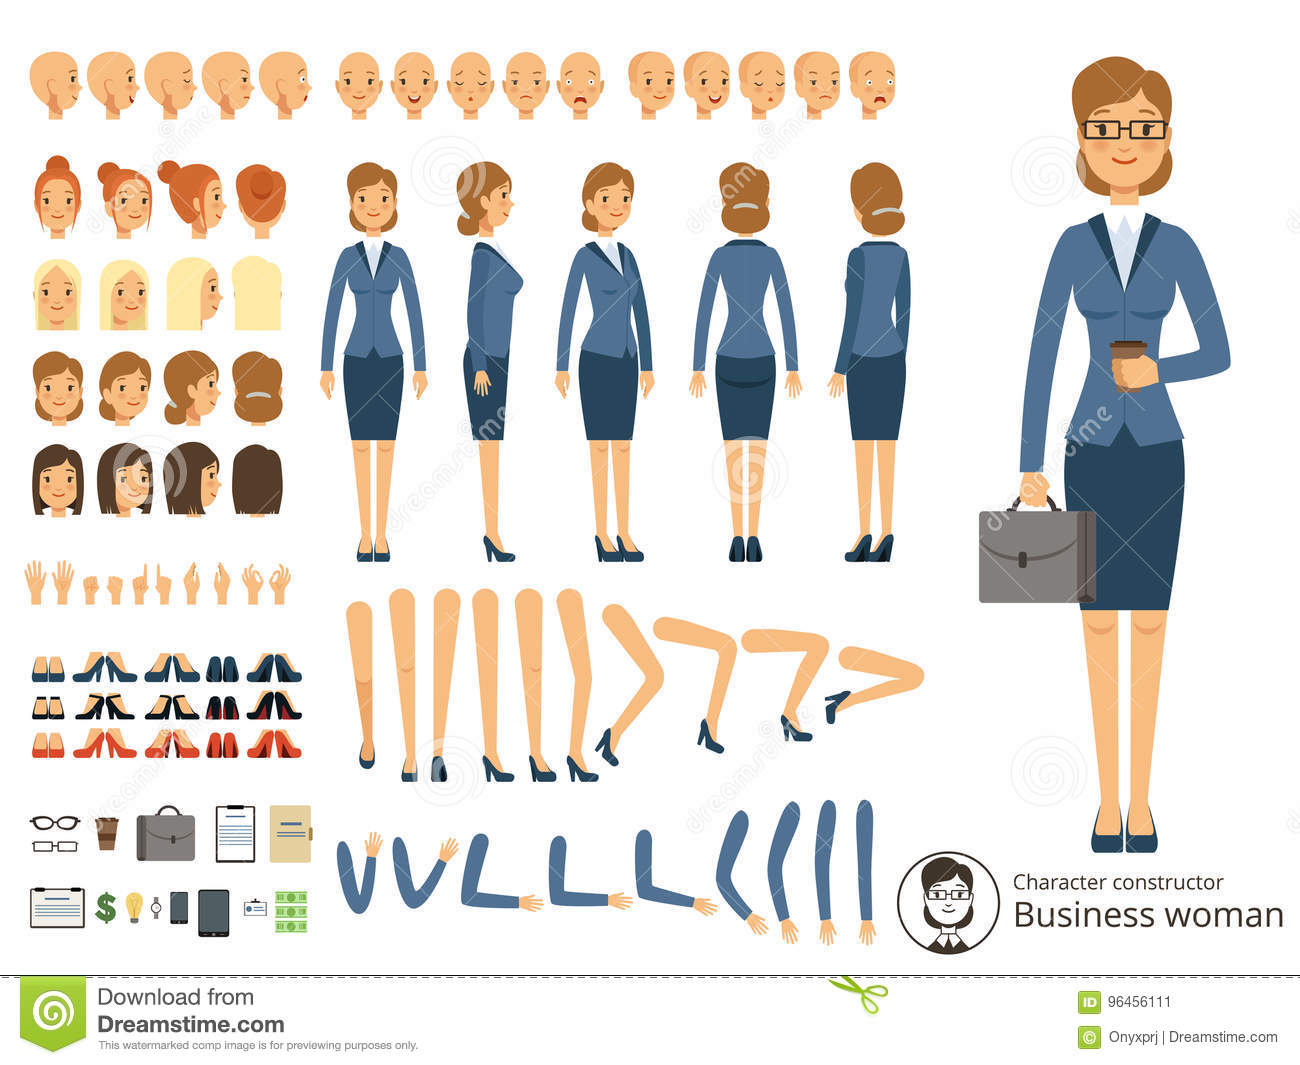 5e53b0163f493 Character constructor of business woman. Cartoon vector illustration of  different body parts and thematic elements. Person woman constructor,  emotion and ...